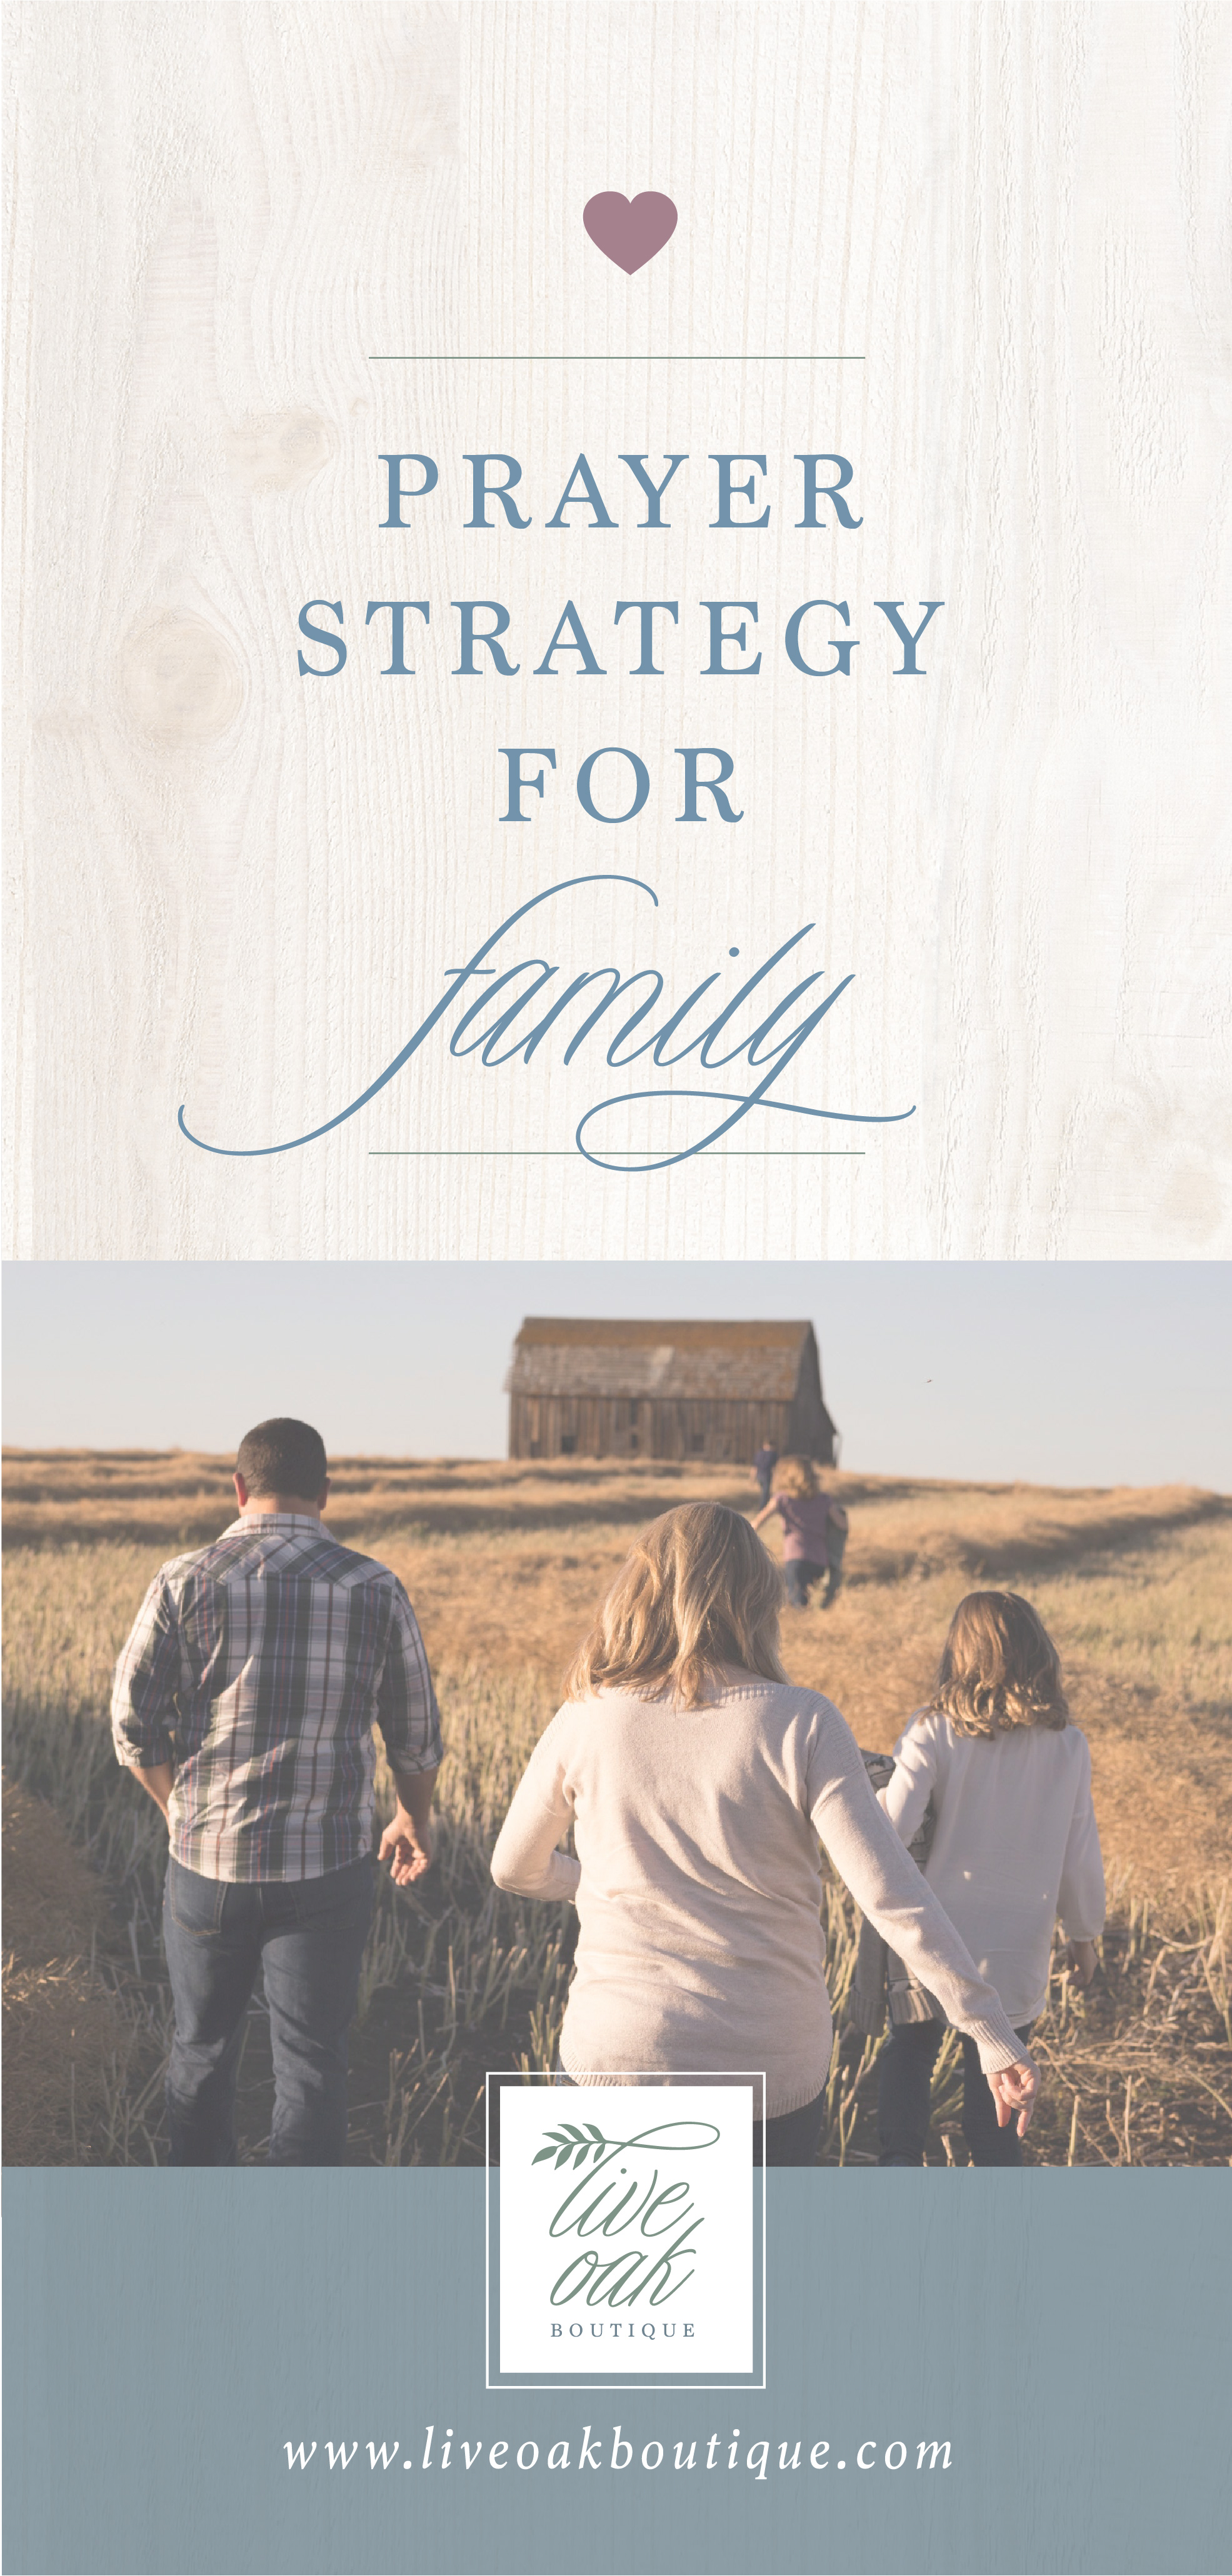 Prayer Strategy for Family from Live Oak Boutique. www.liveoakboutique.com